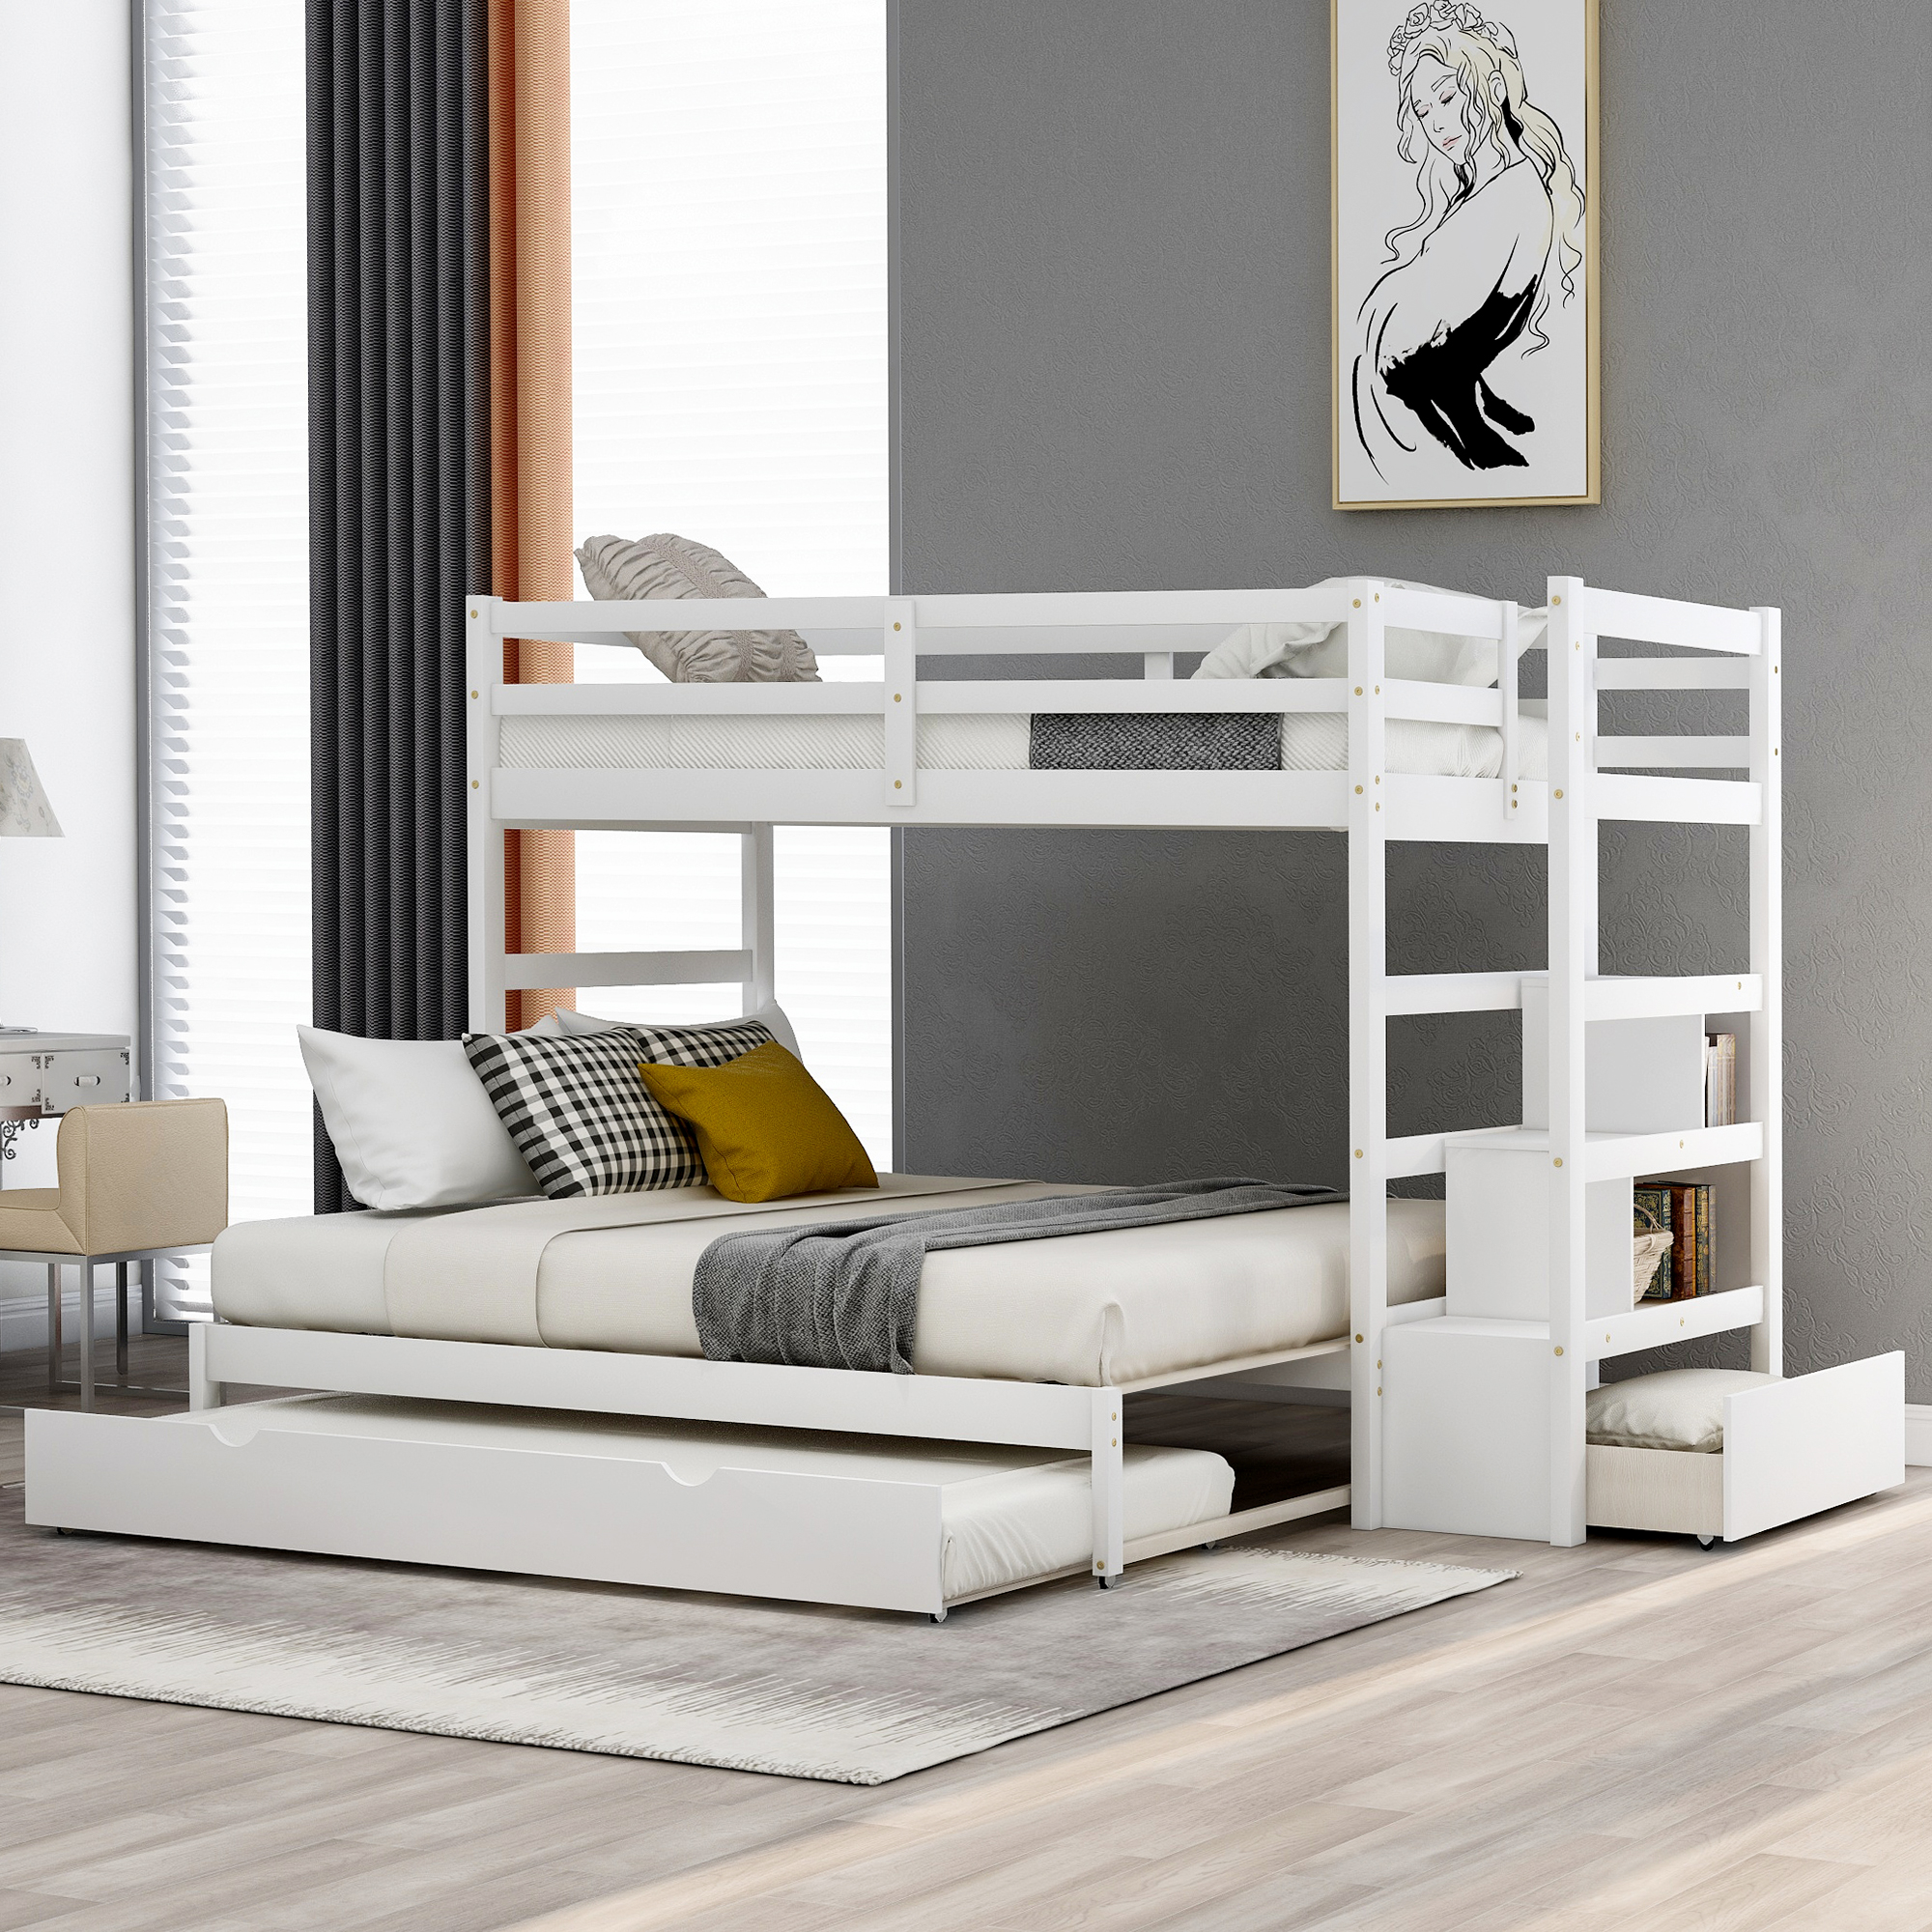 Picture of: Twin Over Twin Bunk Bed Wooden Kids Twin Bunk Bed Frame With Trundle Stairway Twin Size Triple Bunk Bed W Storage Drawers Storage Trundle Bed Frame For Kid S Room No Box Spring Needed White A761